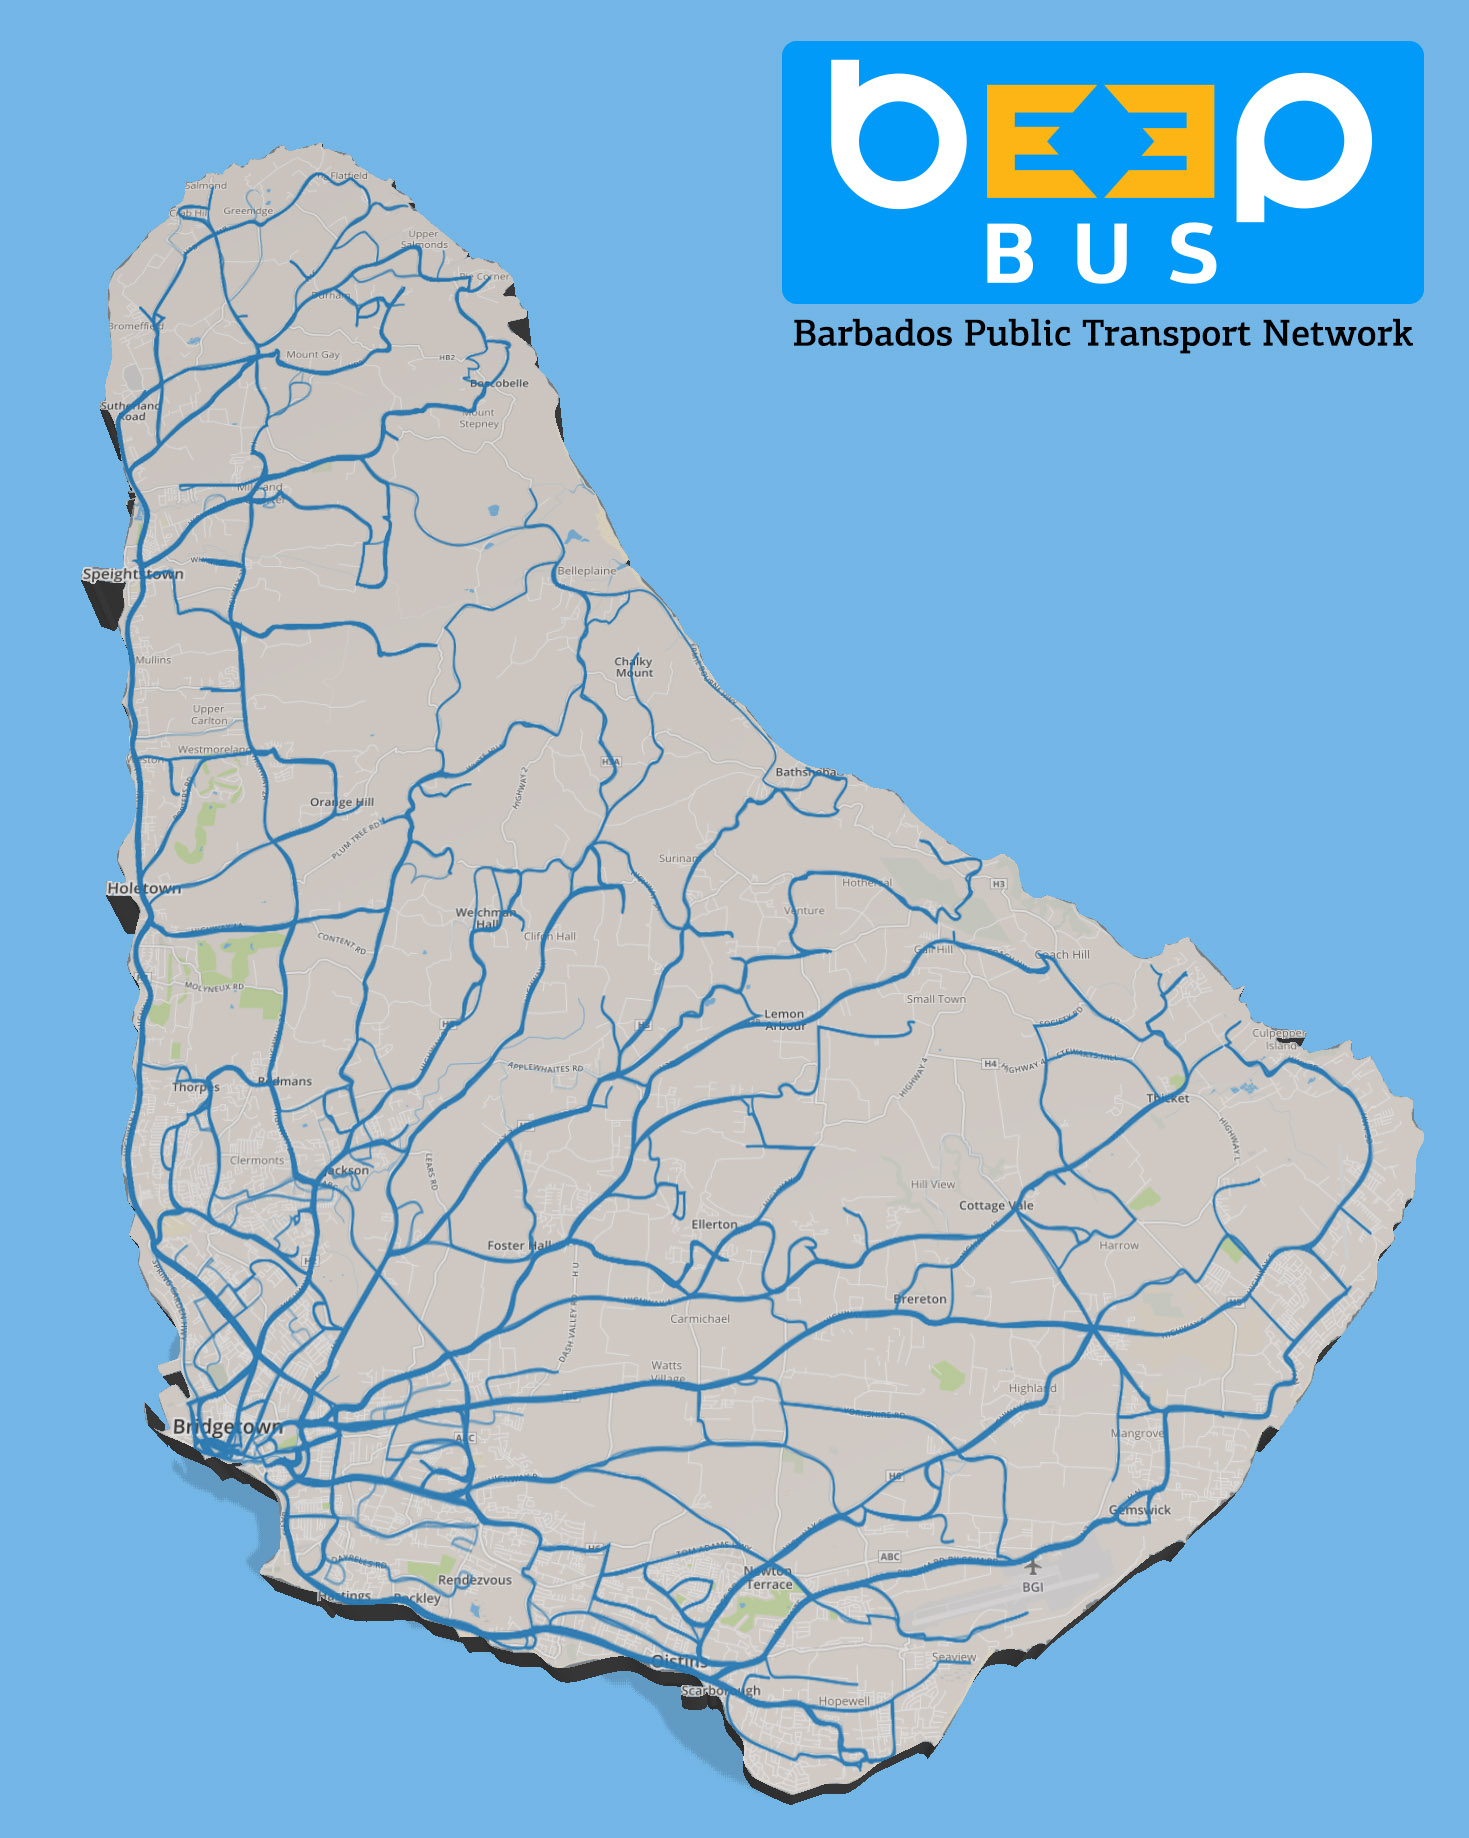 BeepBus All Barbados Bus Routes on a Map